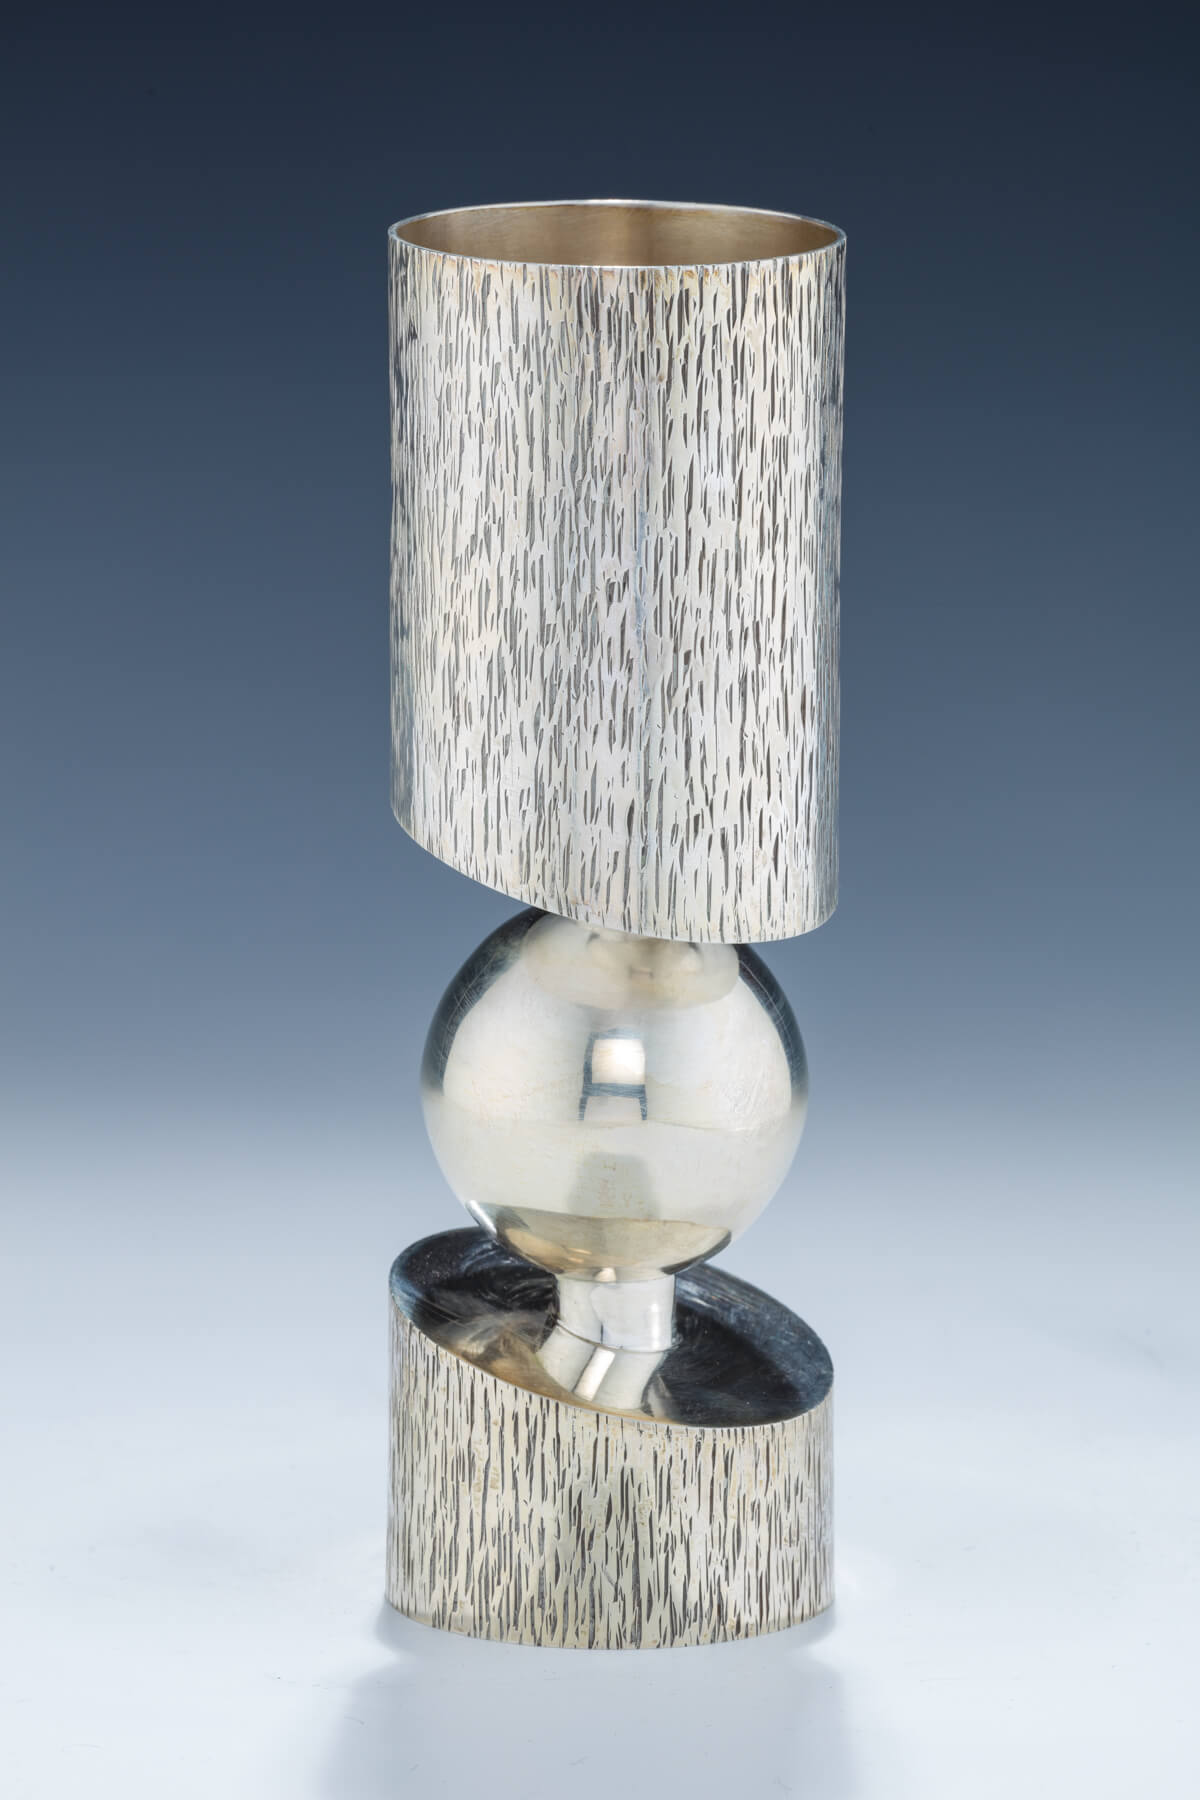 147. A Large Sterling Silver Kiddush Goblet by Carmel Shabi